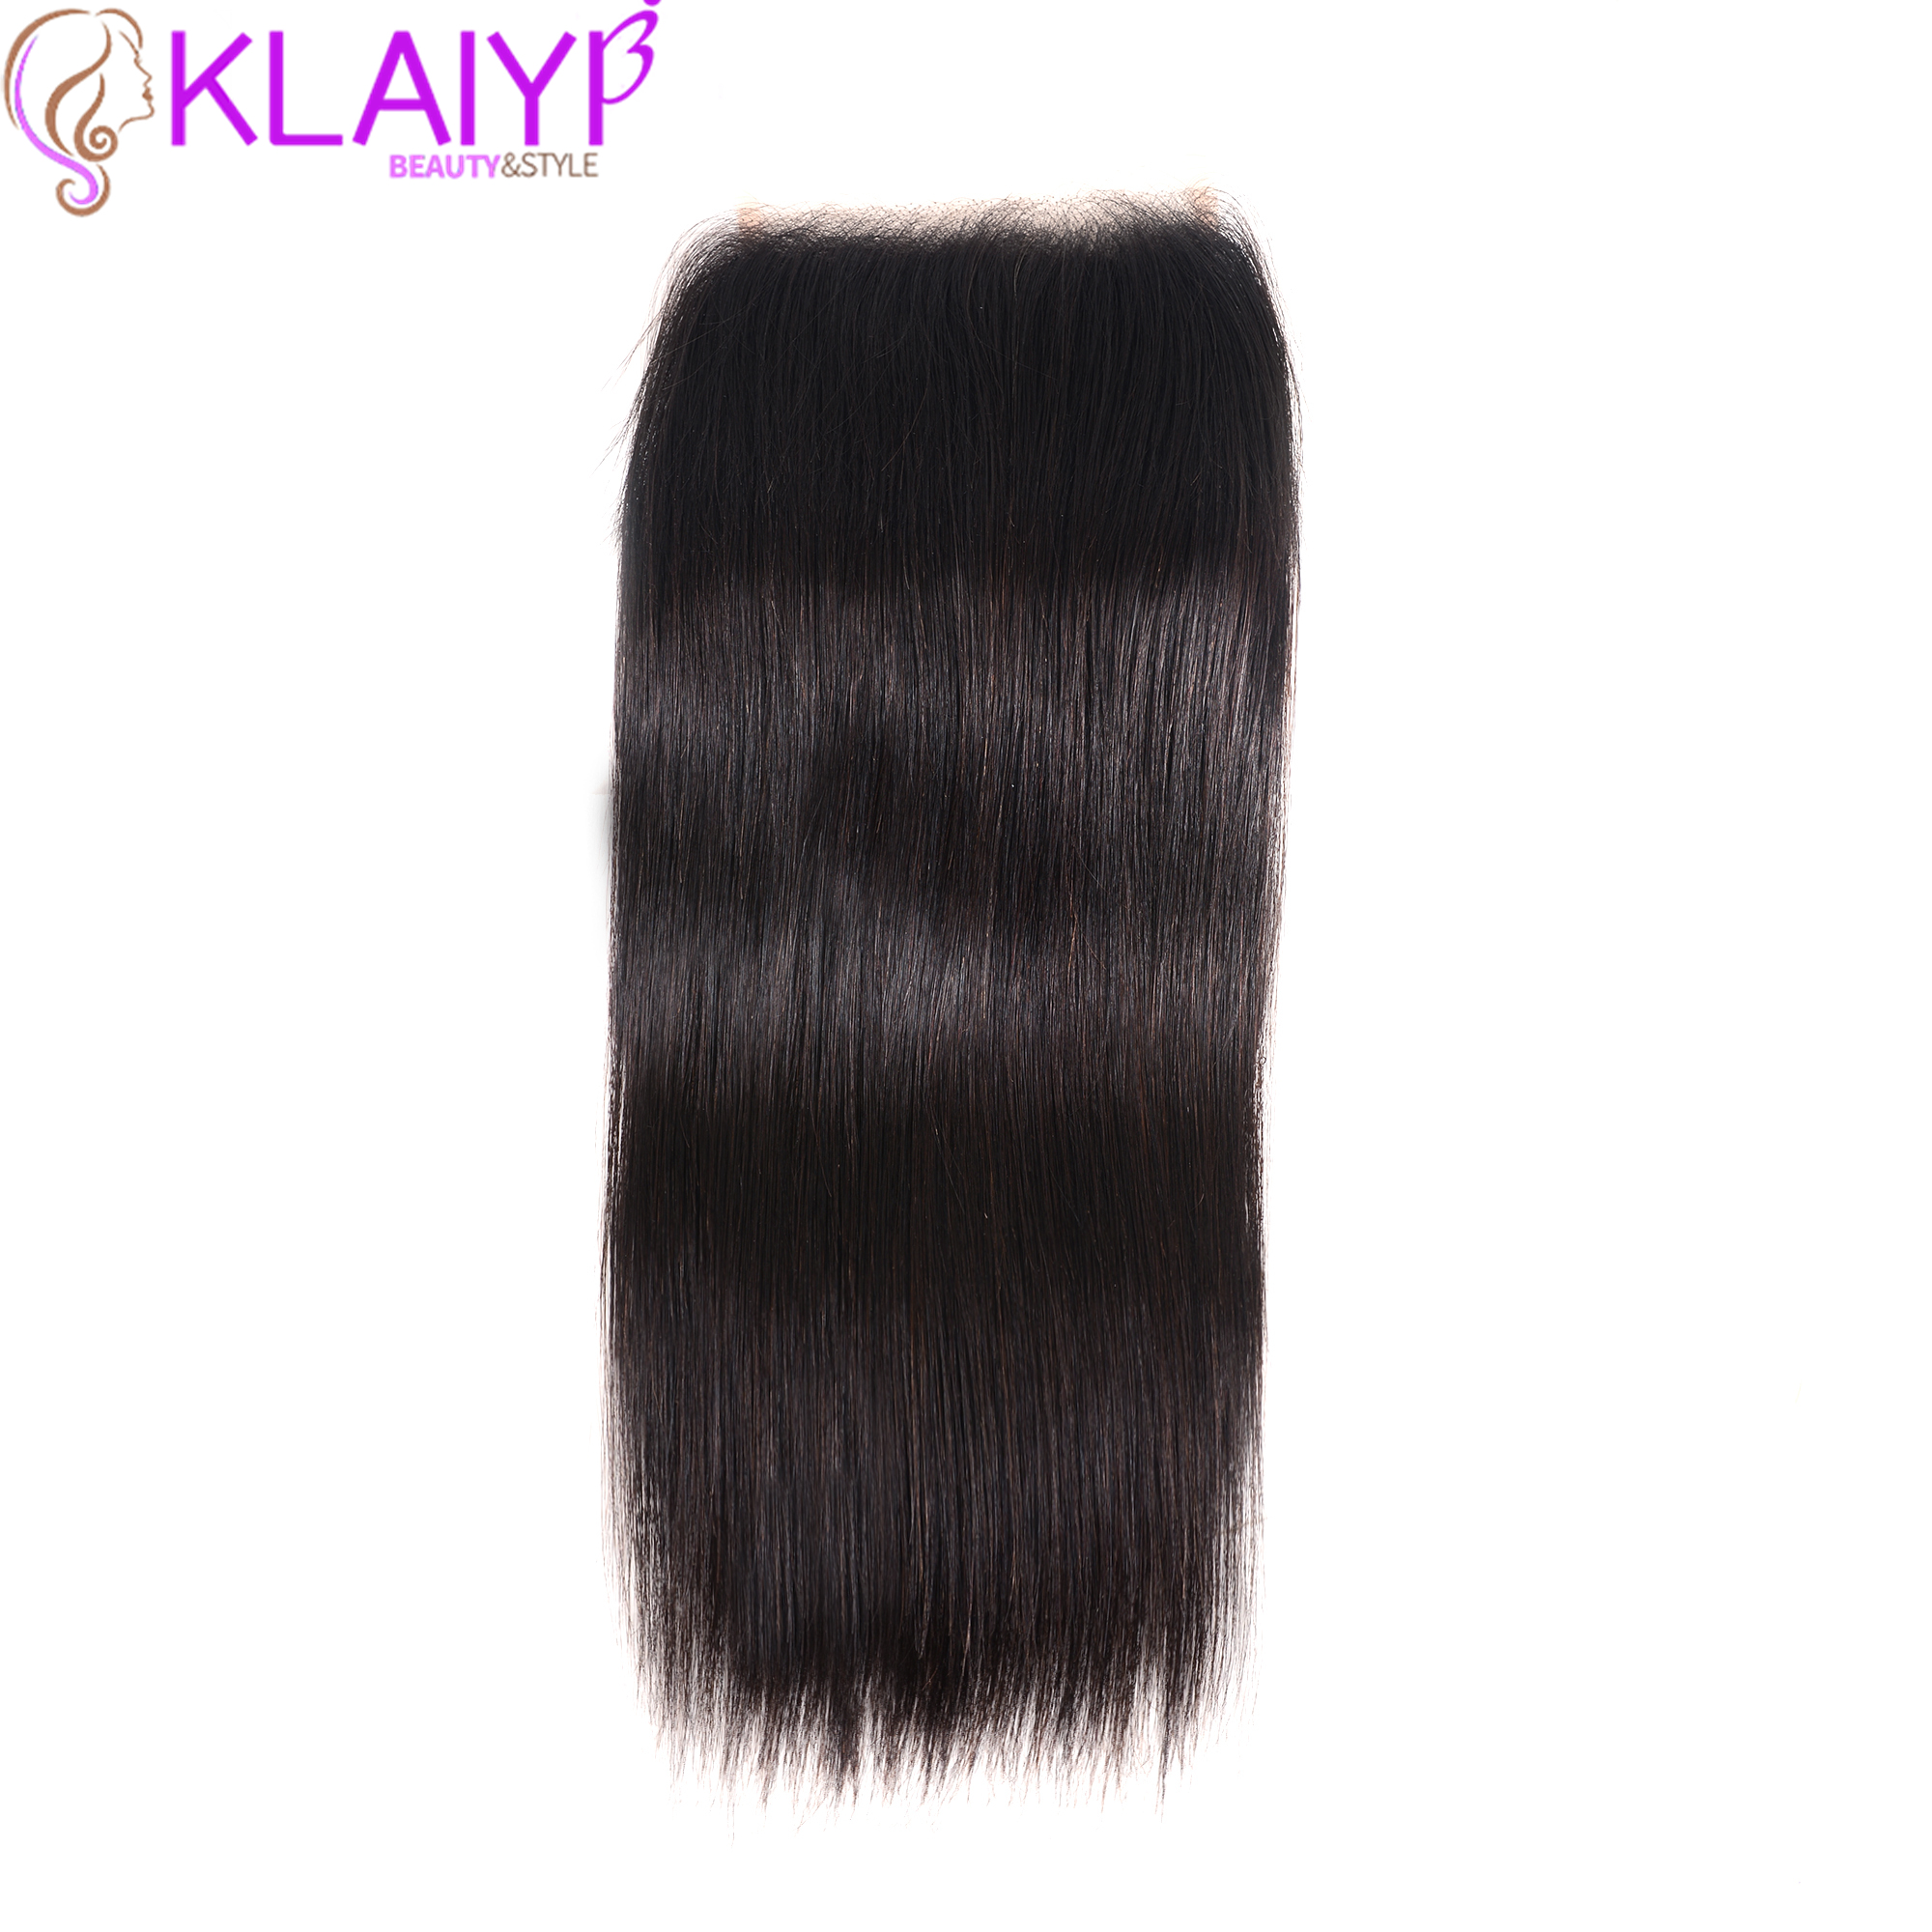 KLAIYI Hair Transparent Lace Closure 5*5 Straight Closure 8-18inch Lace Closure Brazilian Remy Hair Swiss Lace Natural Color(China)